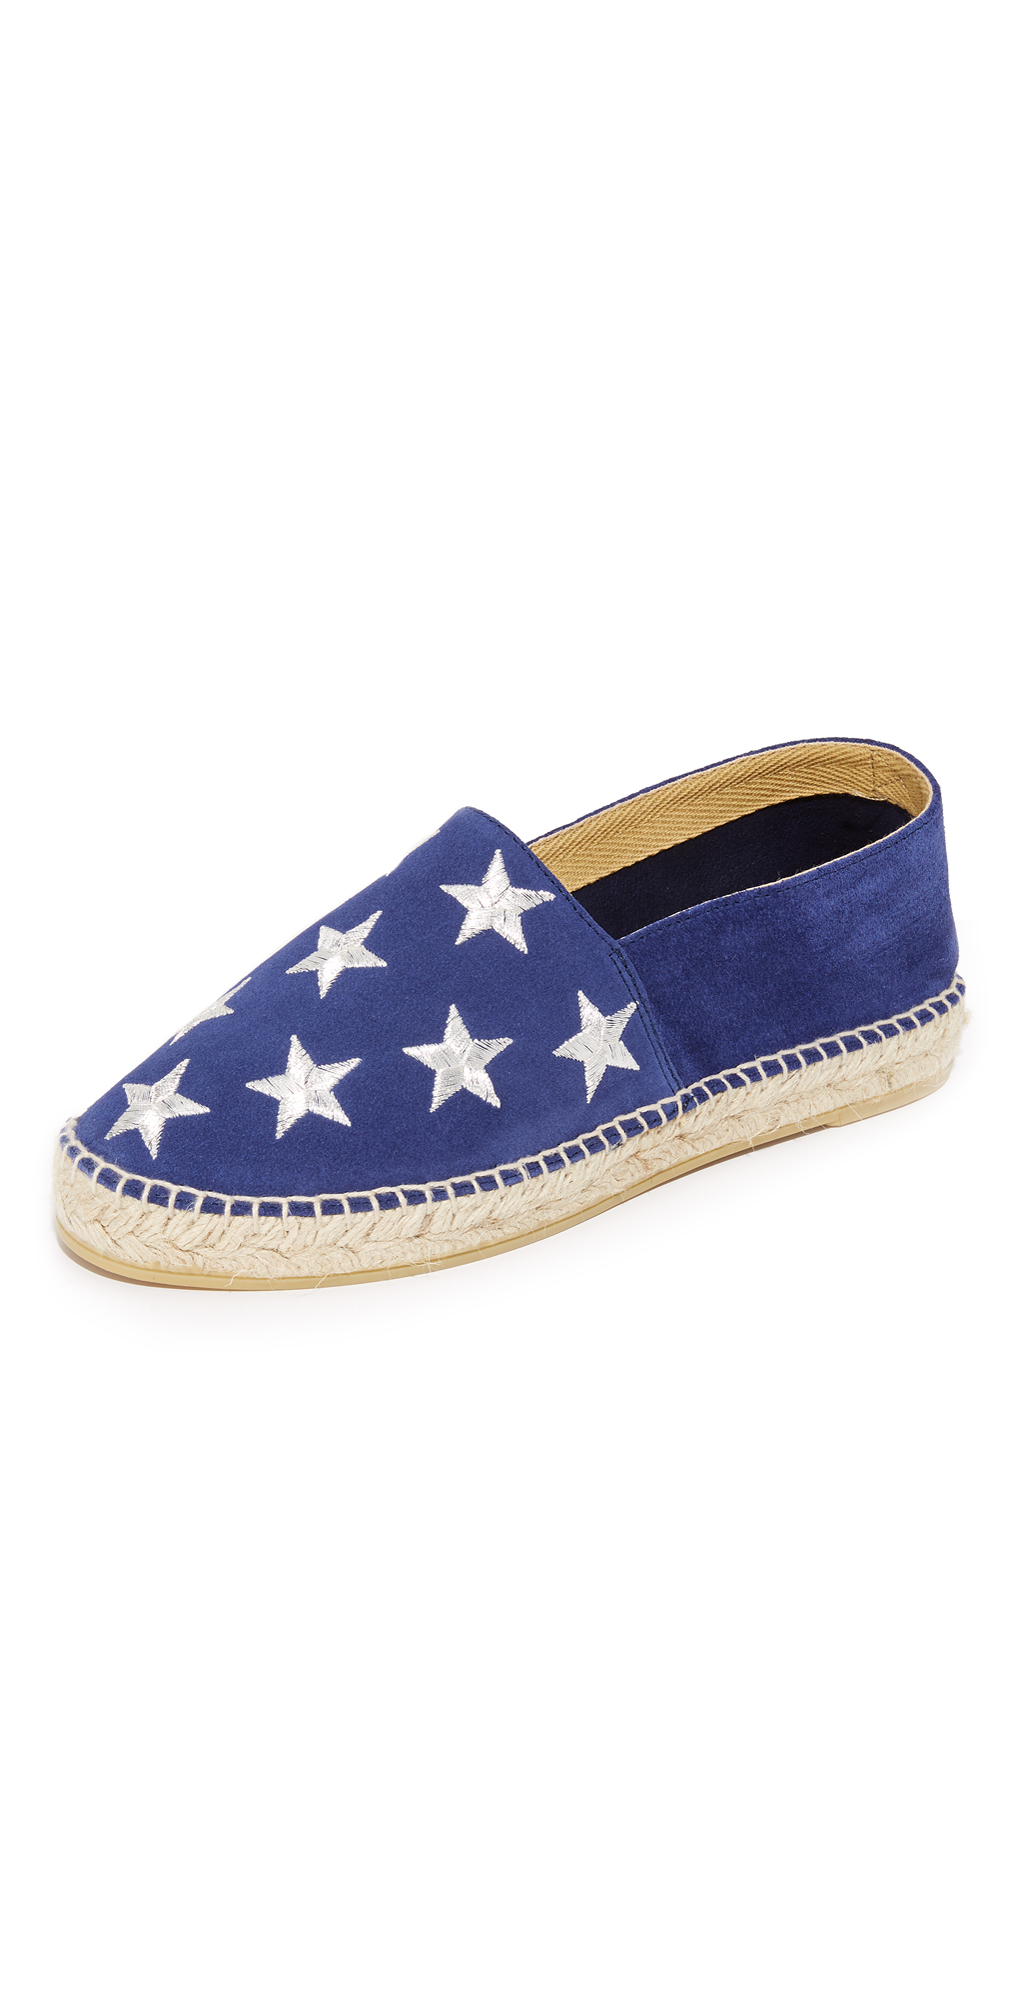 Stars Espadrilles ONE by South Parade Footwear